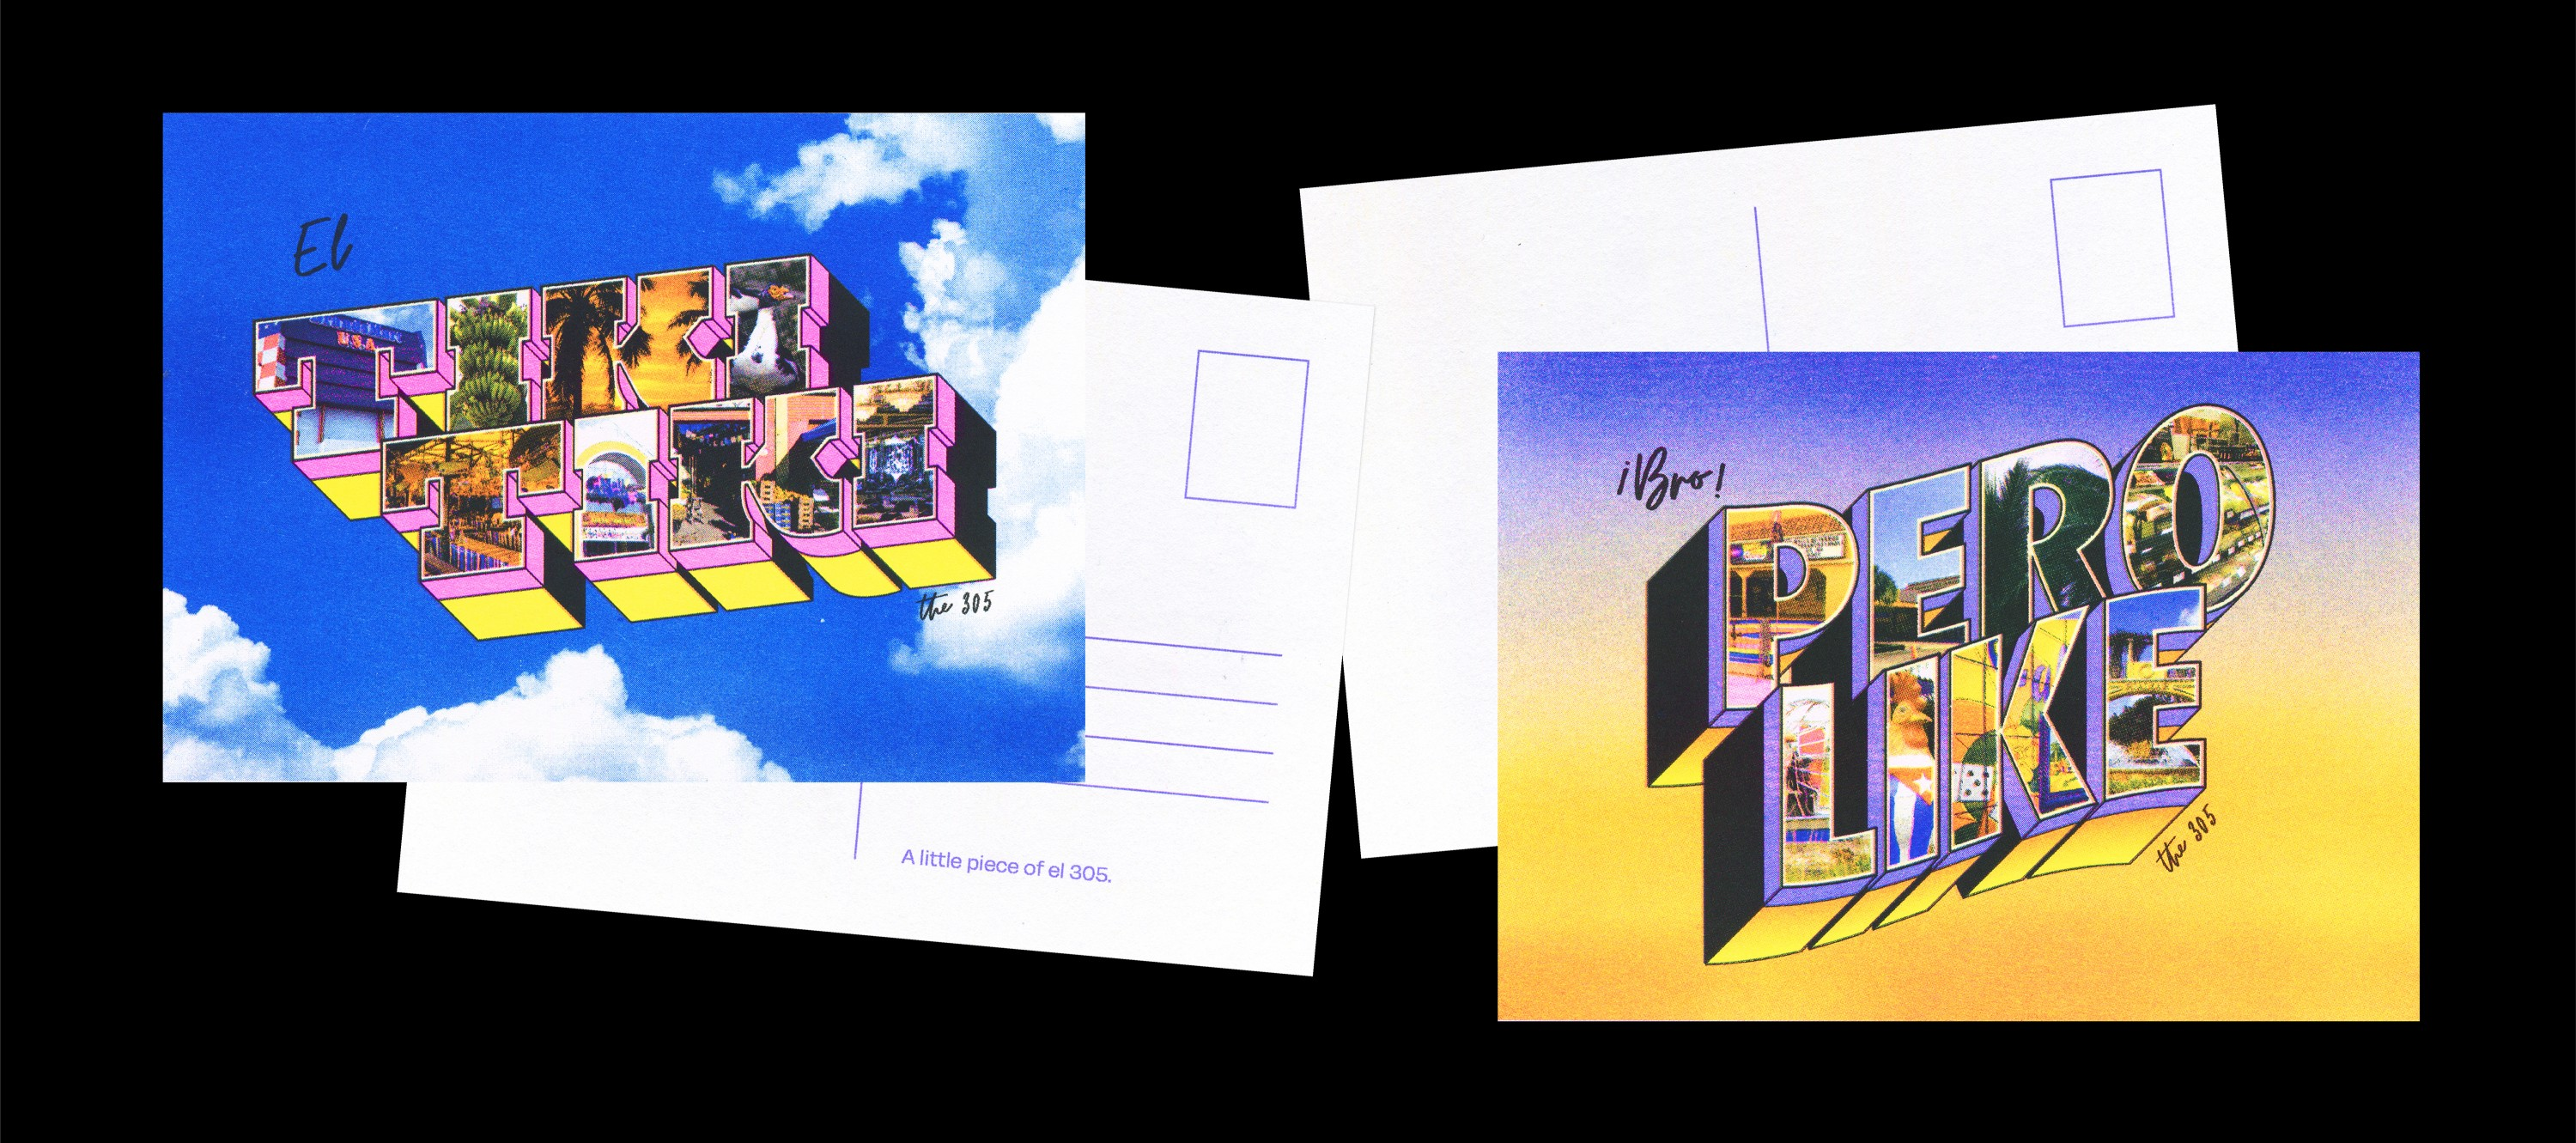 """2 postcards in the classic """"Greetings From"""" style, juxtaposed with the Miami phrases """"El Tiki Tiki"""" on the left postcard, and """"Bro Pero Like"""" on the right postcard. The """"Tiki Tiki"""" postcard has a background of a bright blue s"""